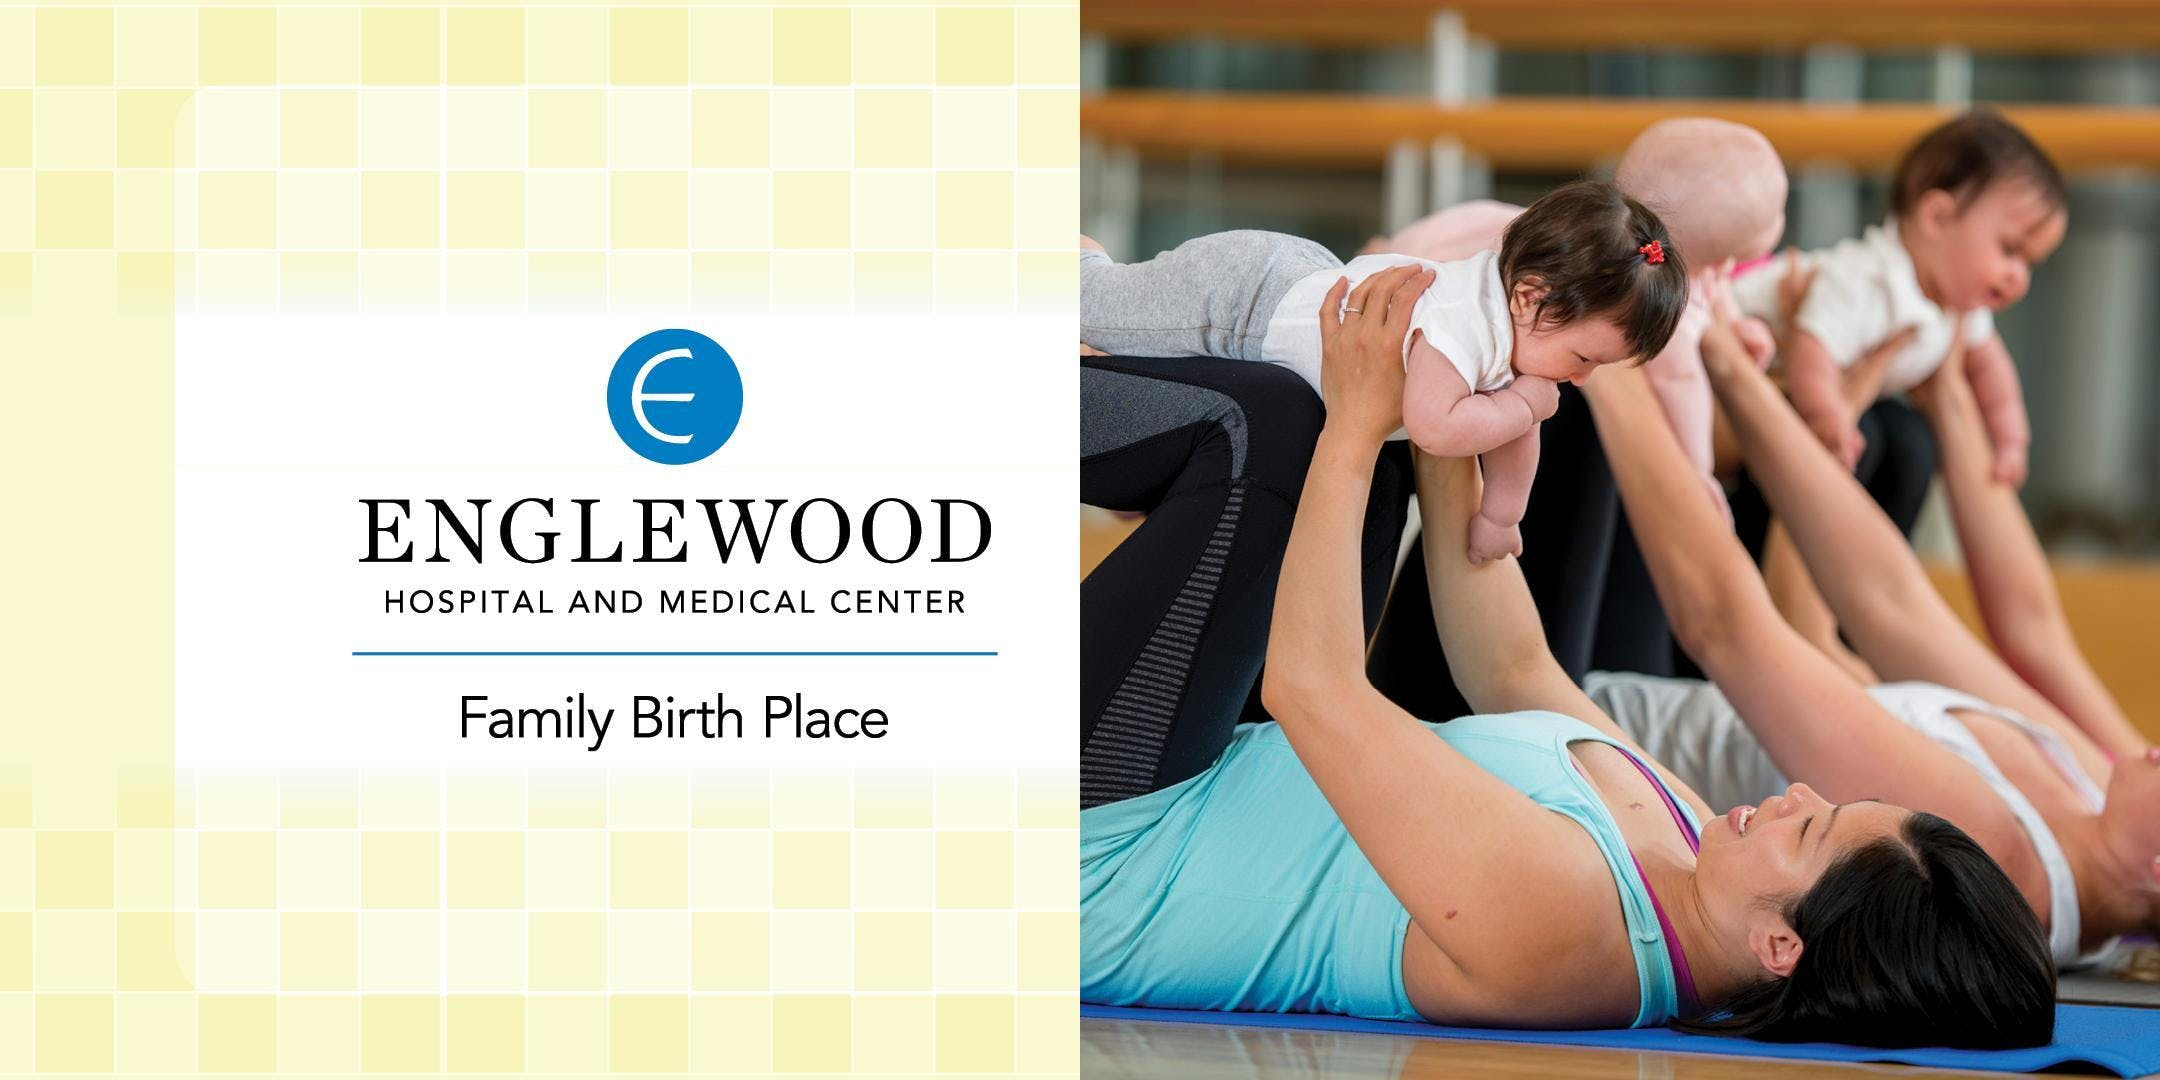 More info: Mommy and Me Postnatal Yoga Series (SEPT 13-OCT 18)